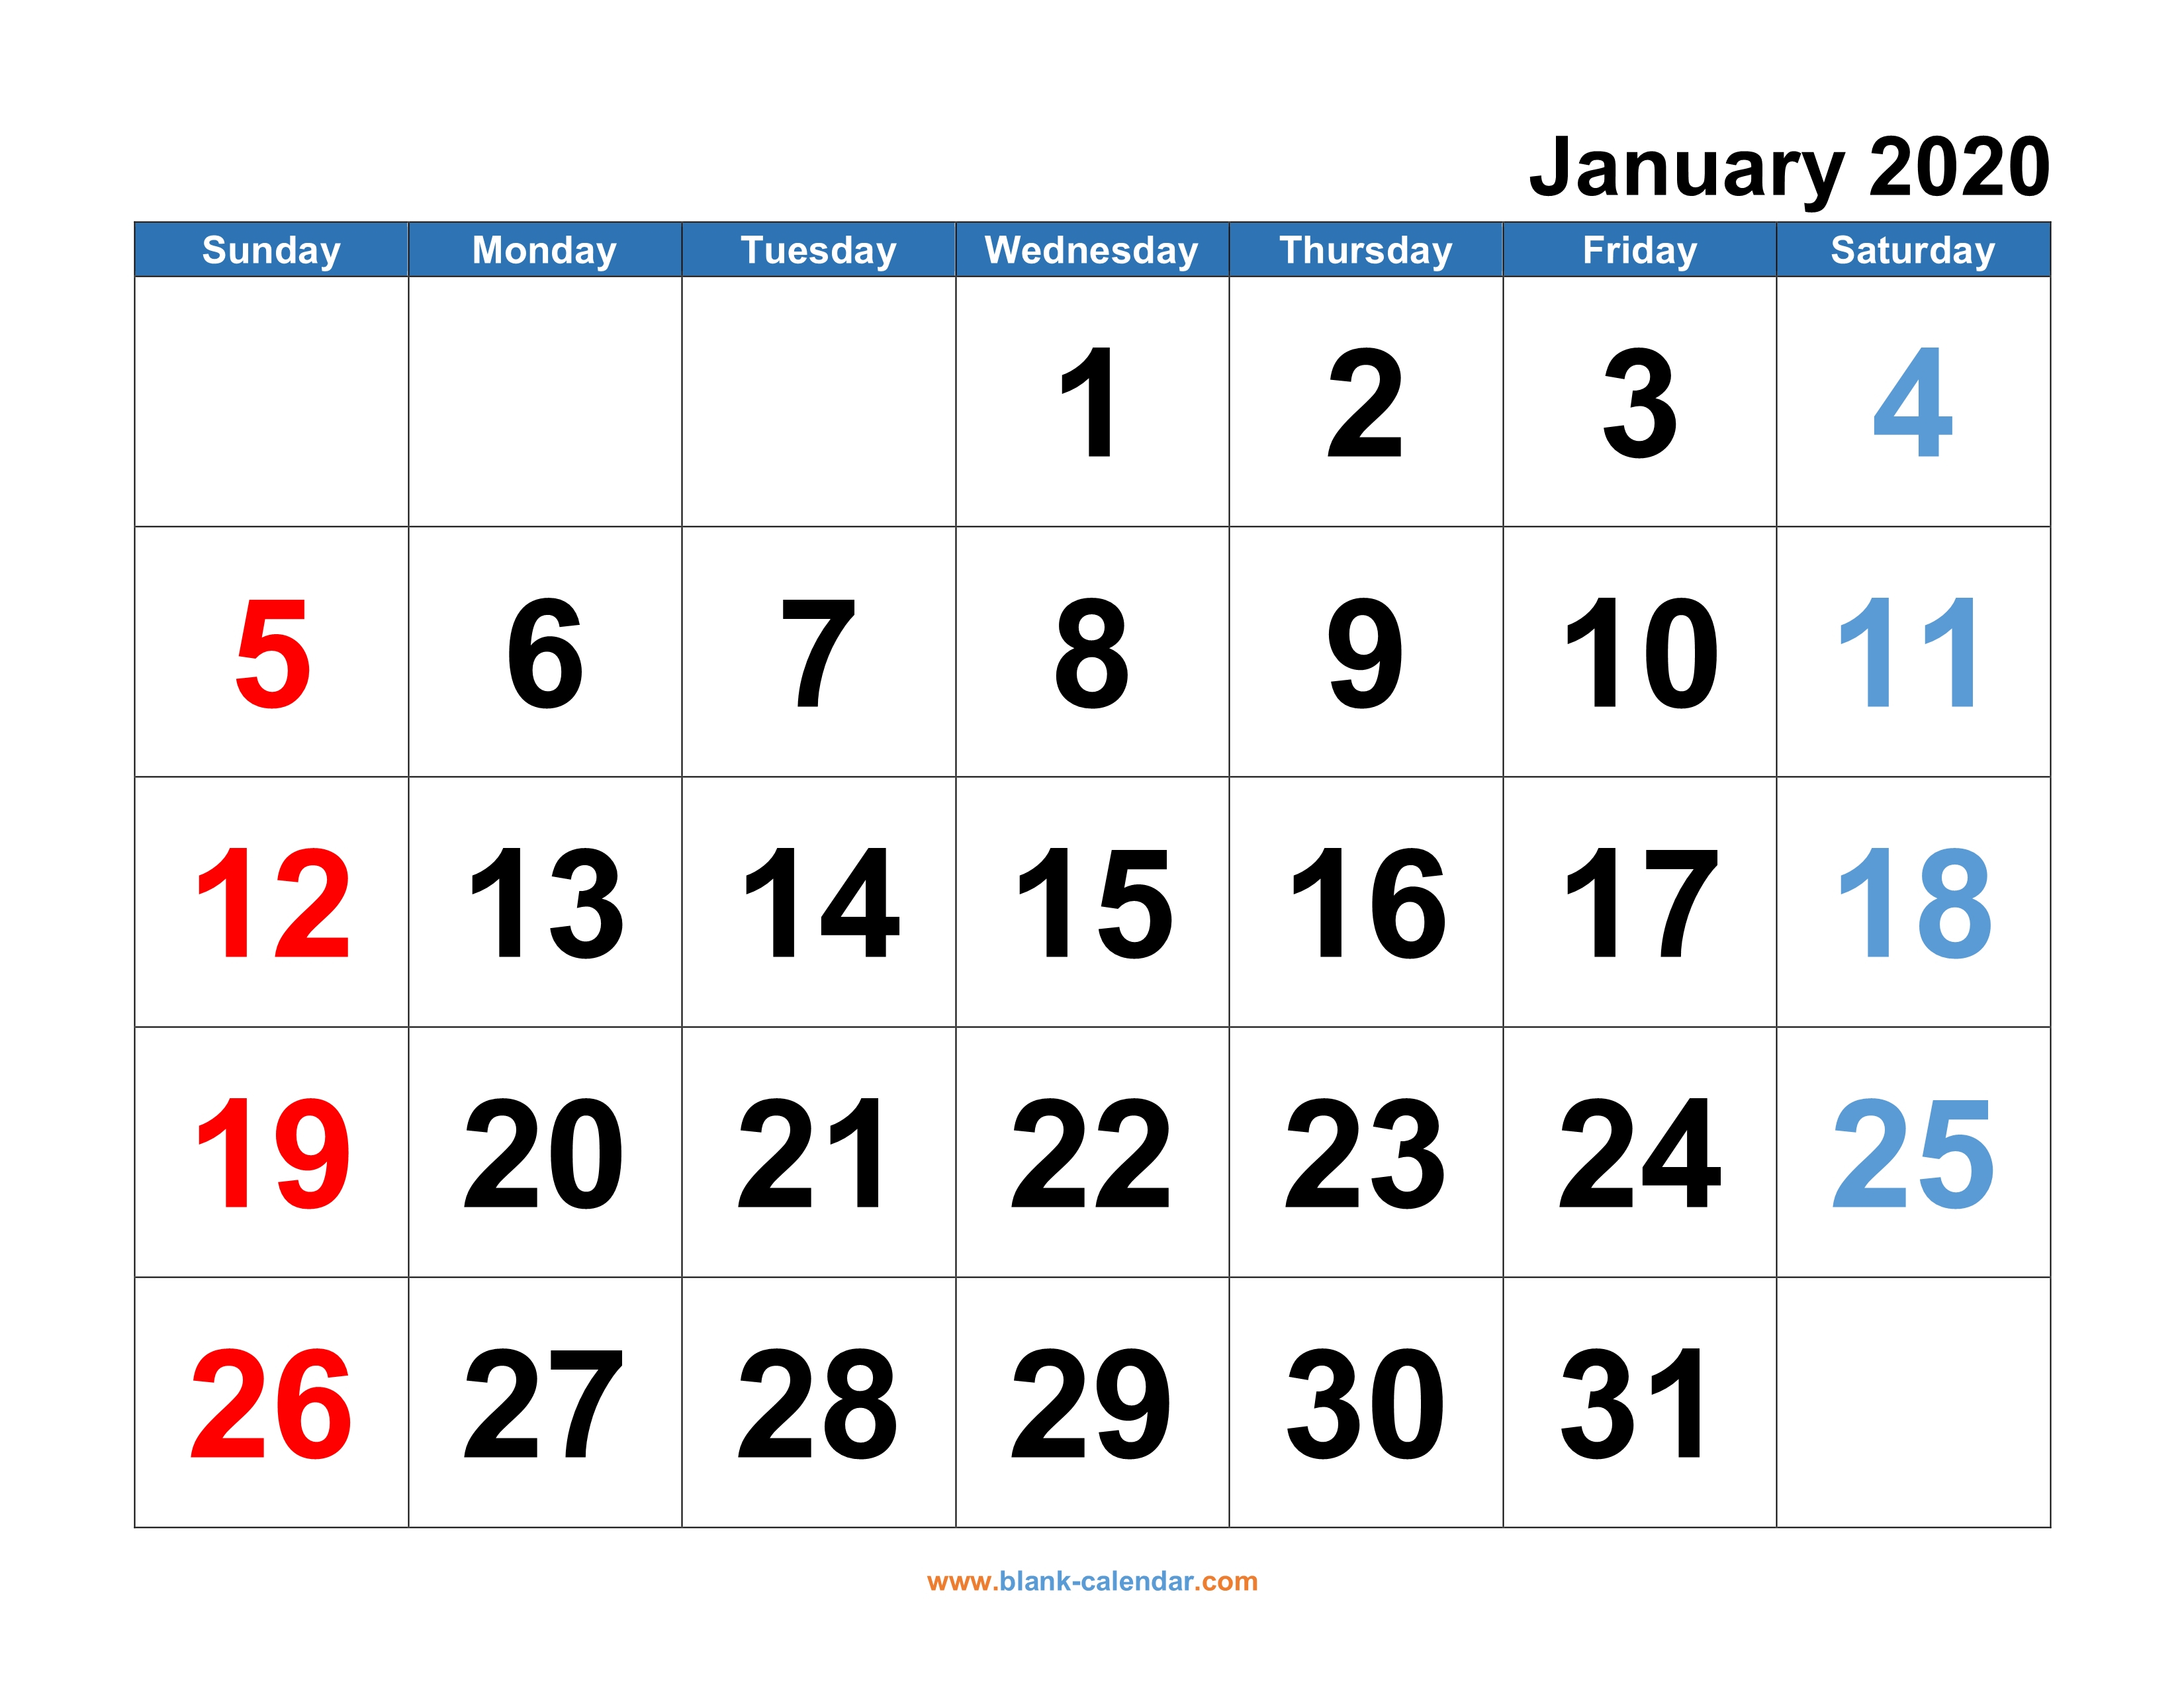 Monthly Calendar 2020 | Free Download, Editable And Printable within Blank 2020 Calendars To Edit